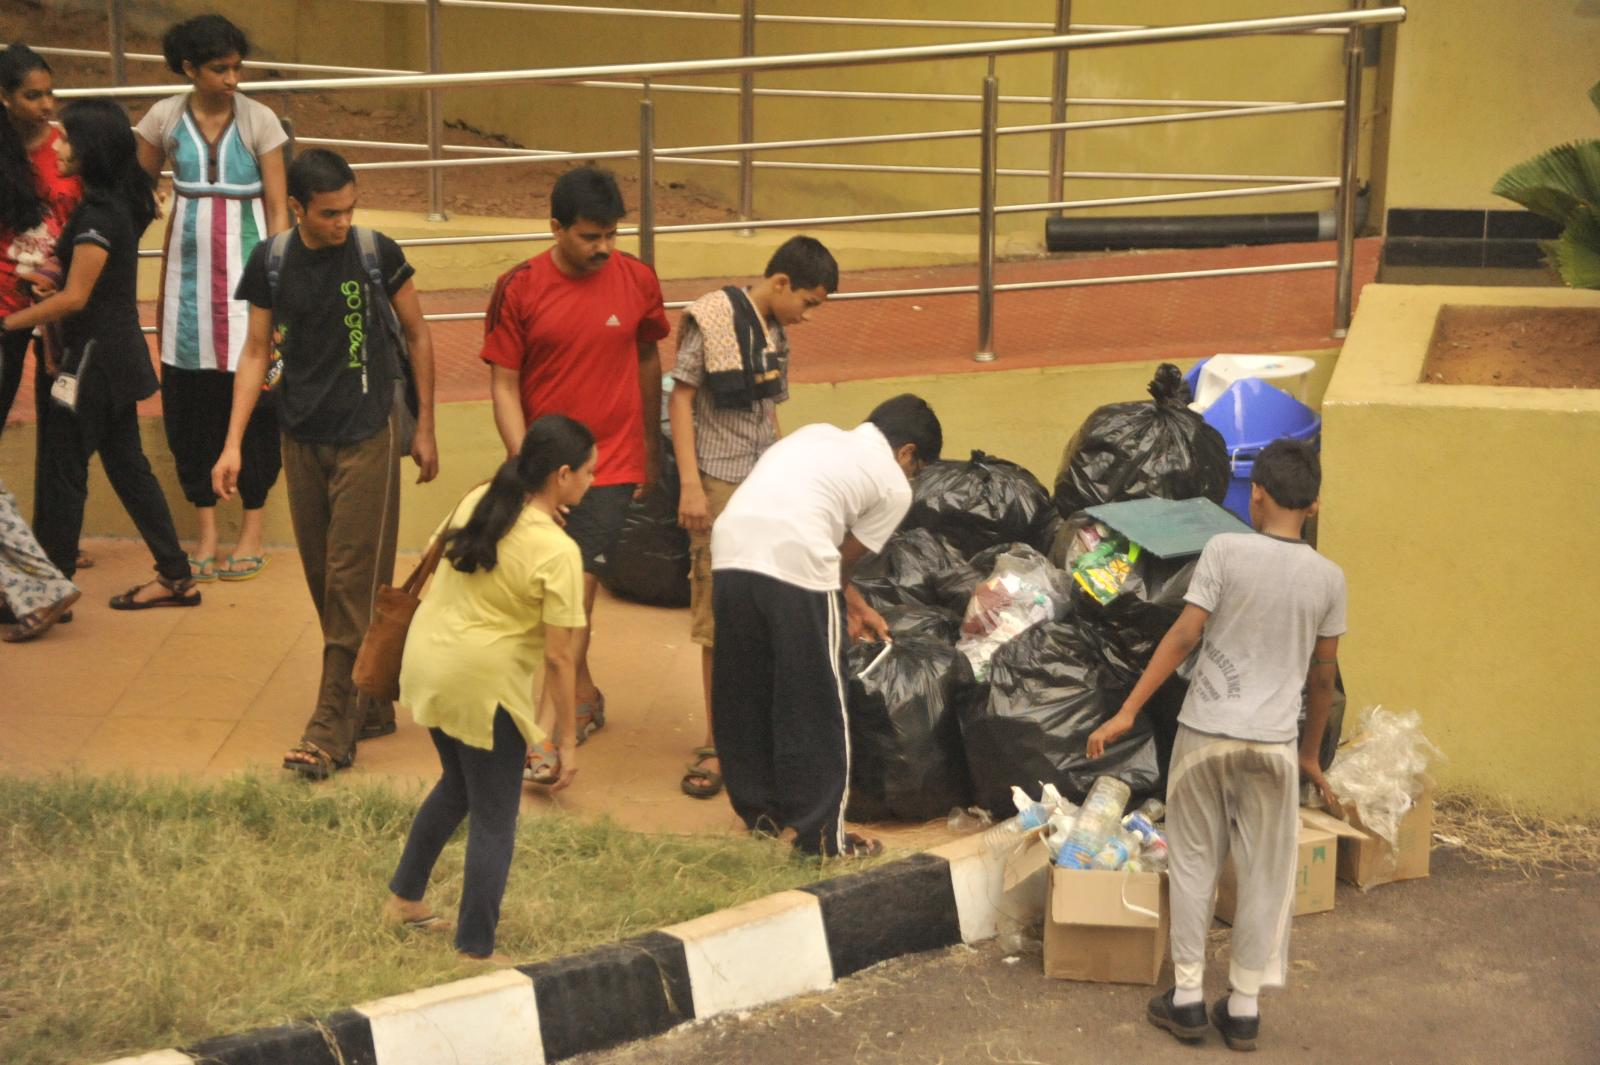 then came the shramdaan, that kept the campus clean